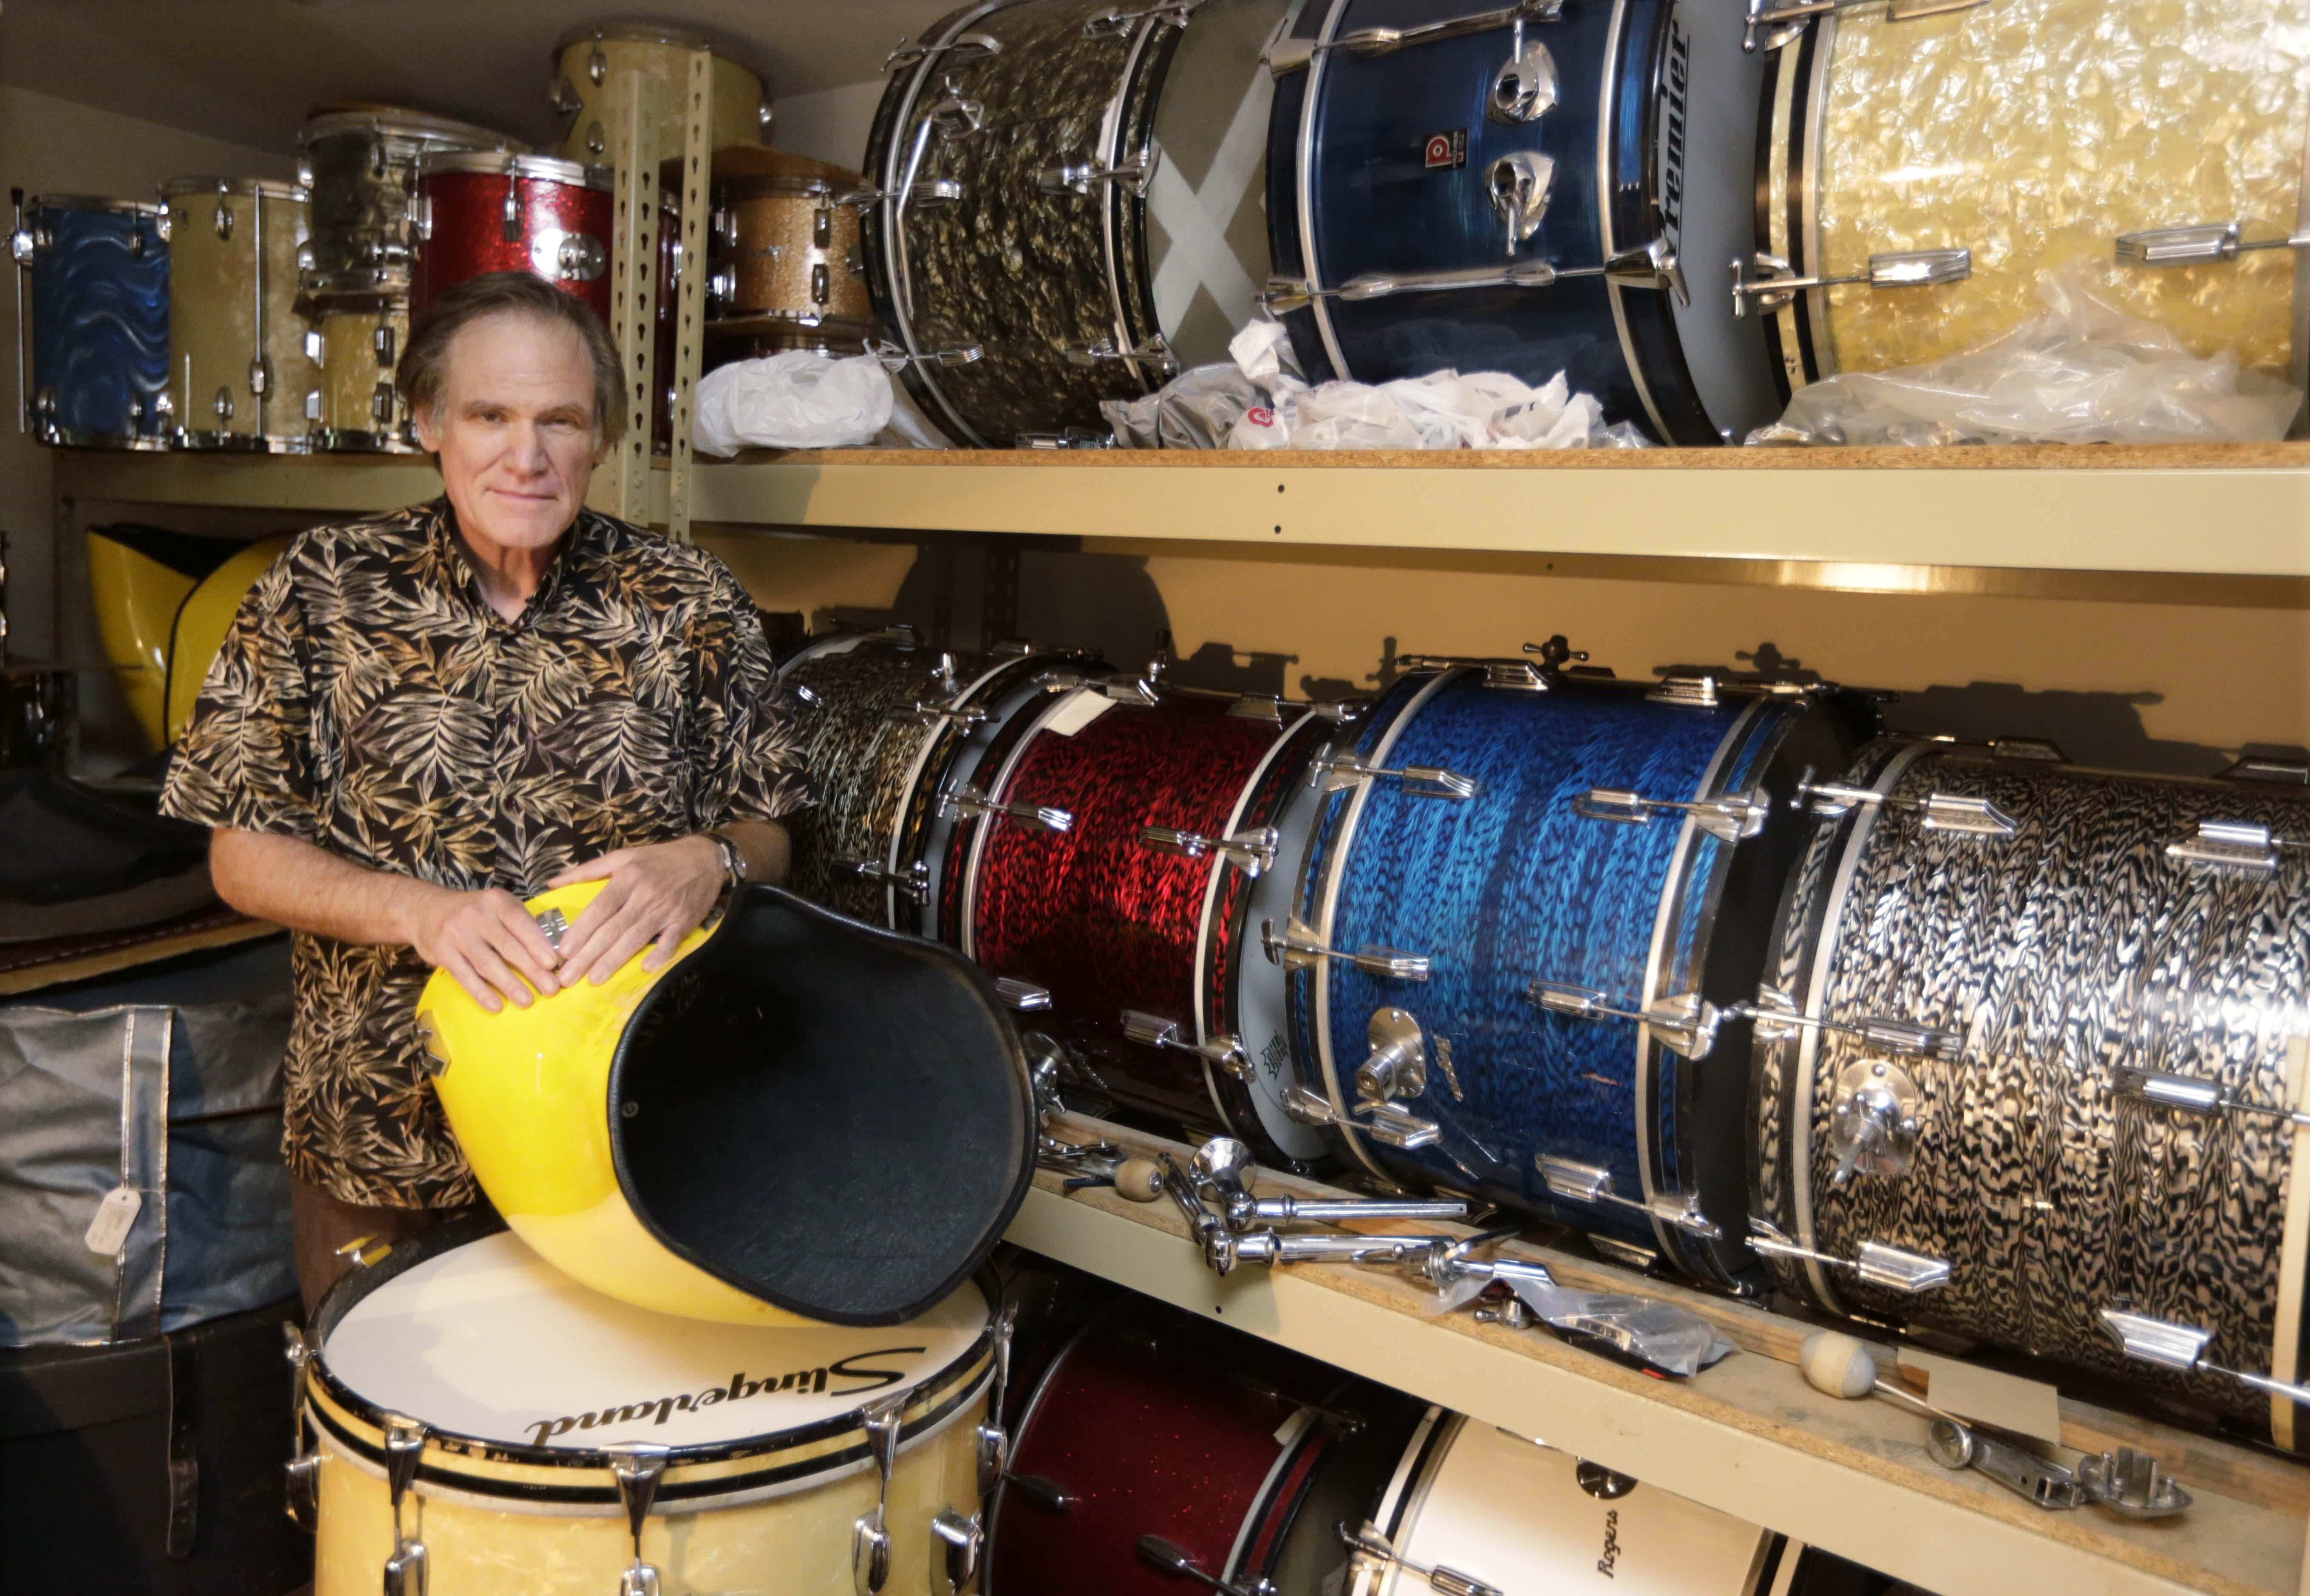 Jim Glay launched a vintage drum company, Crash Boom Bam, from a spare bedroom in his apartment in 2009.